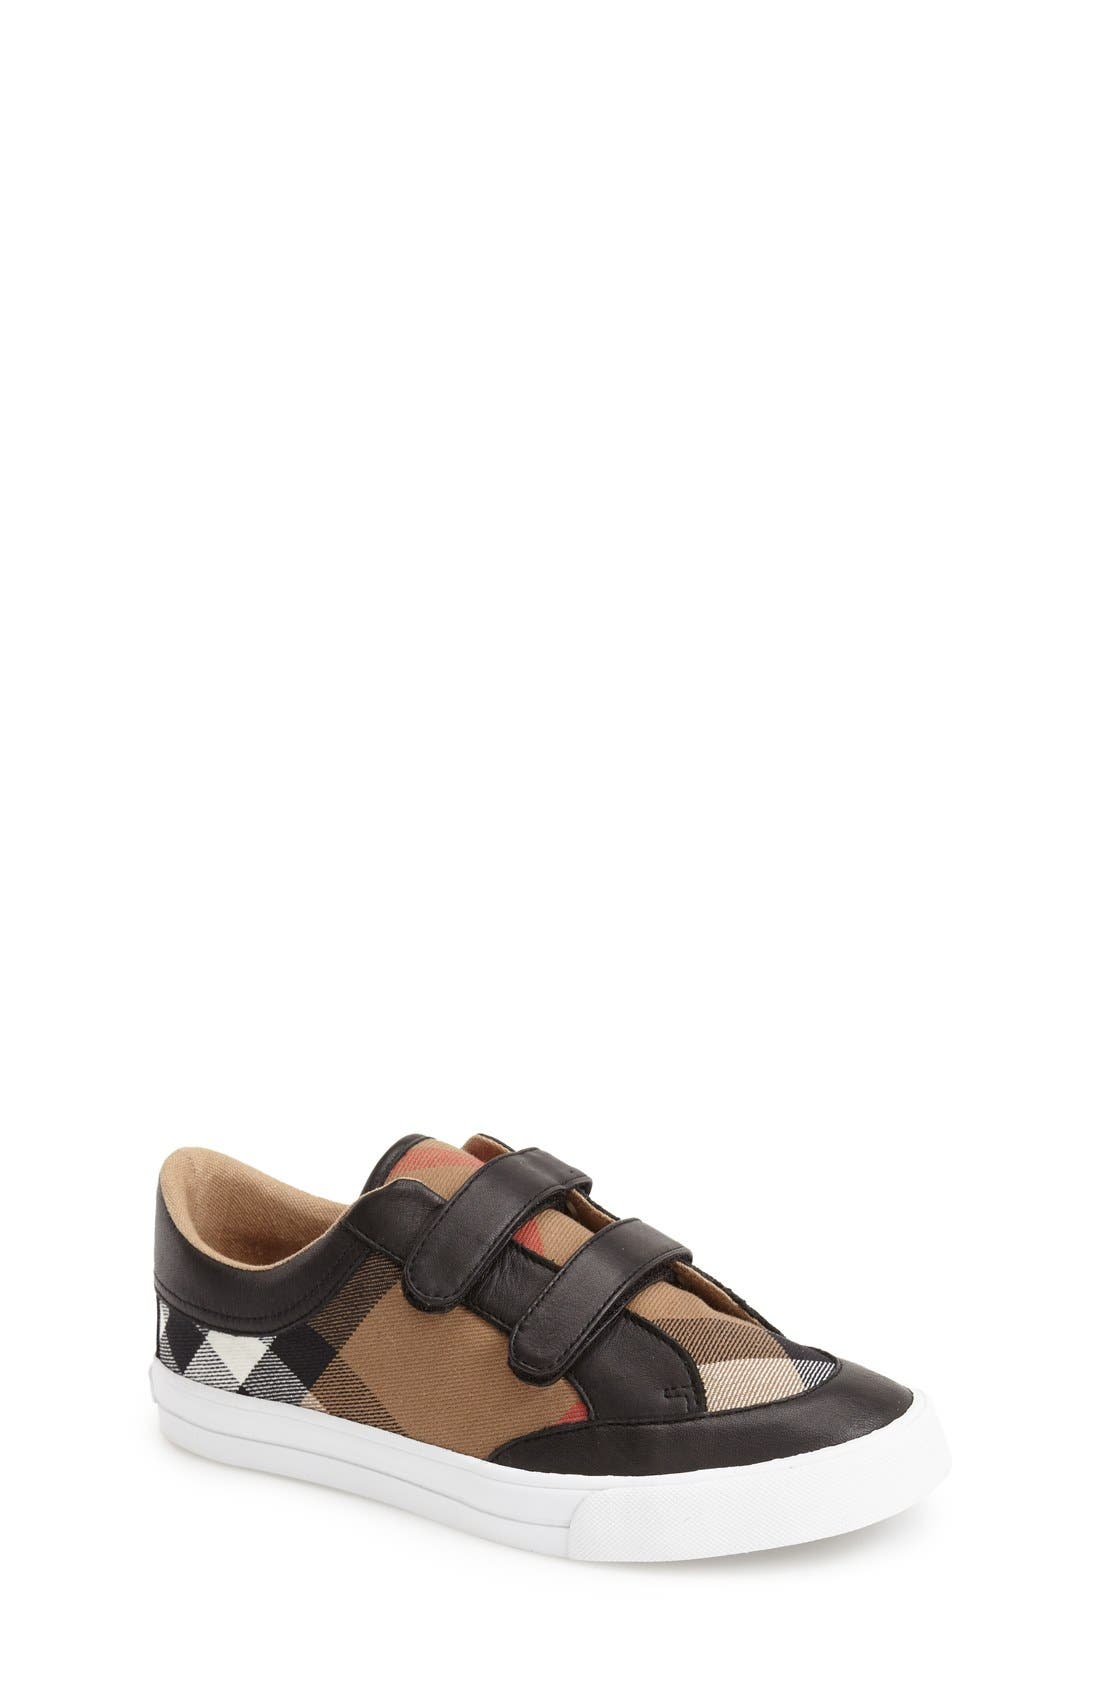 BURBERRY, Mini Heacham Sneaker, Main thumbnail 1, color, 001